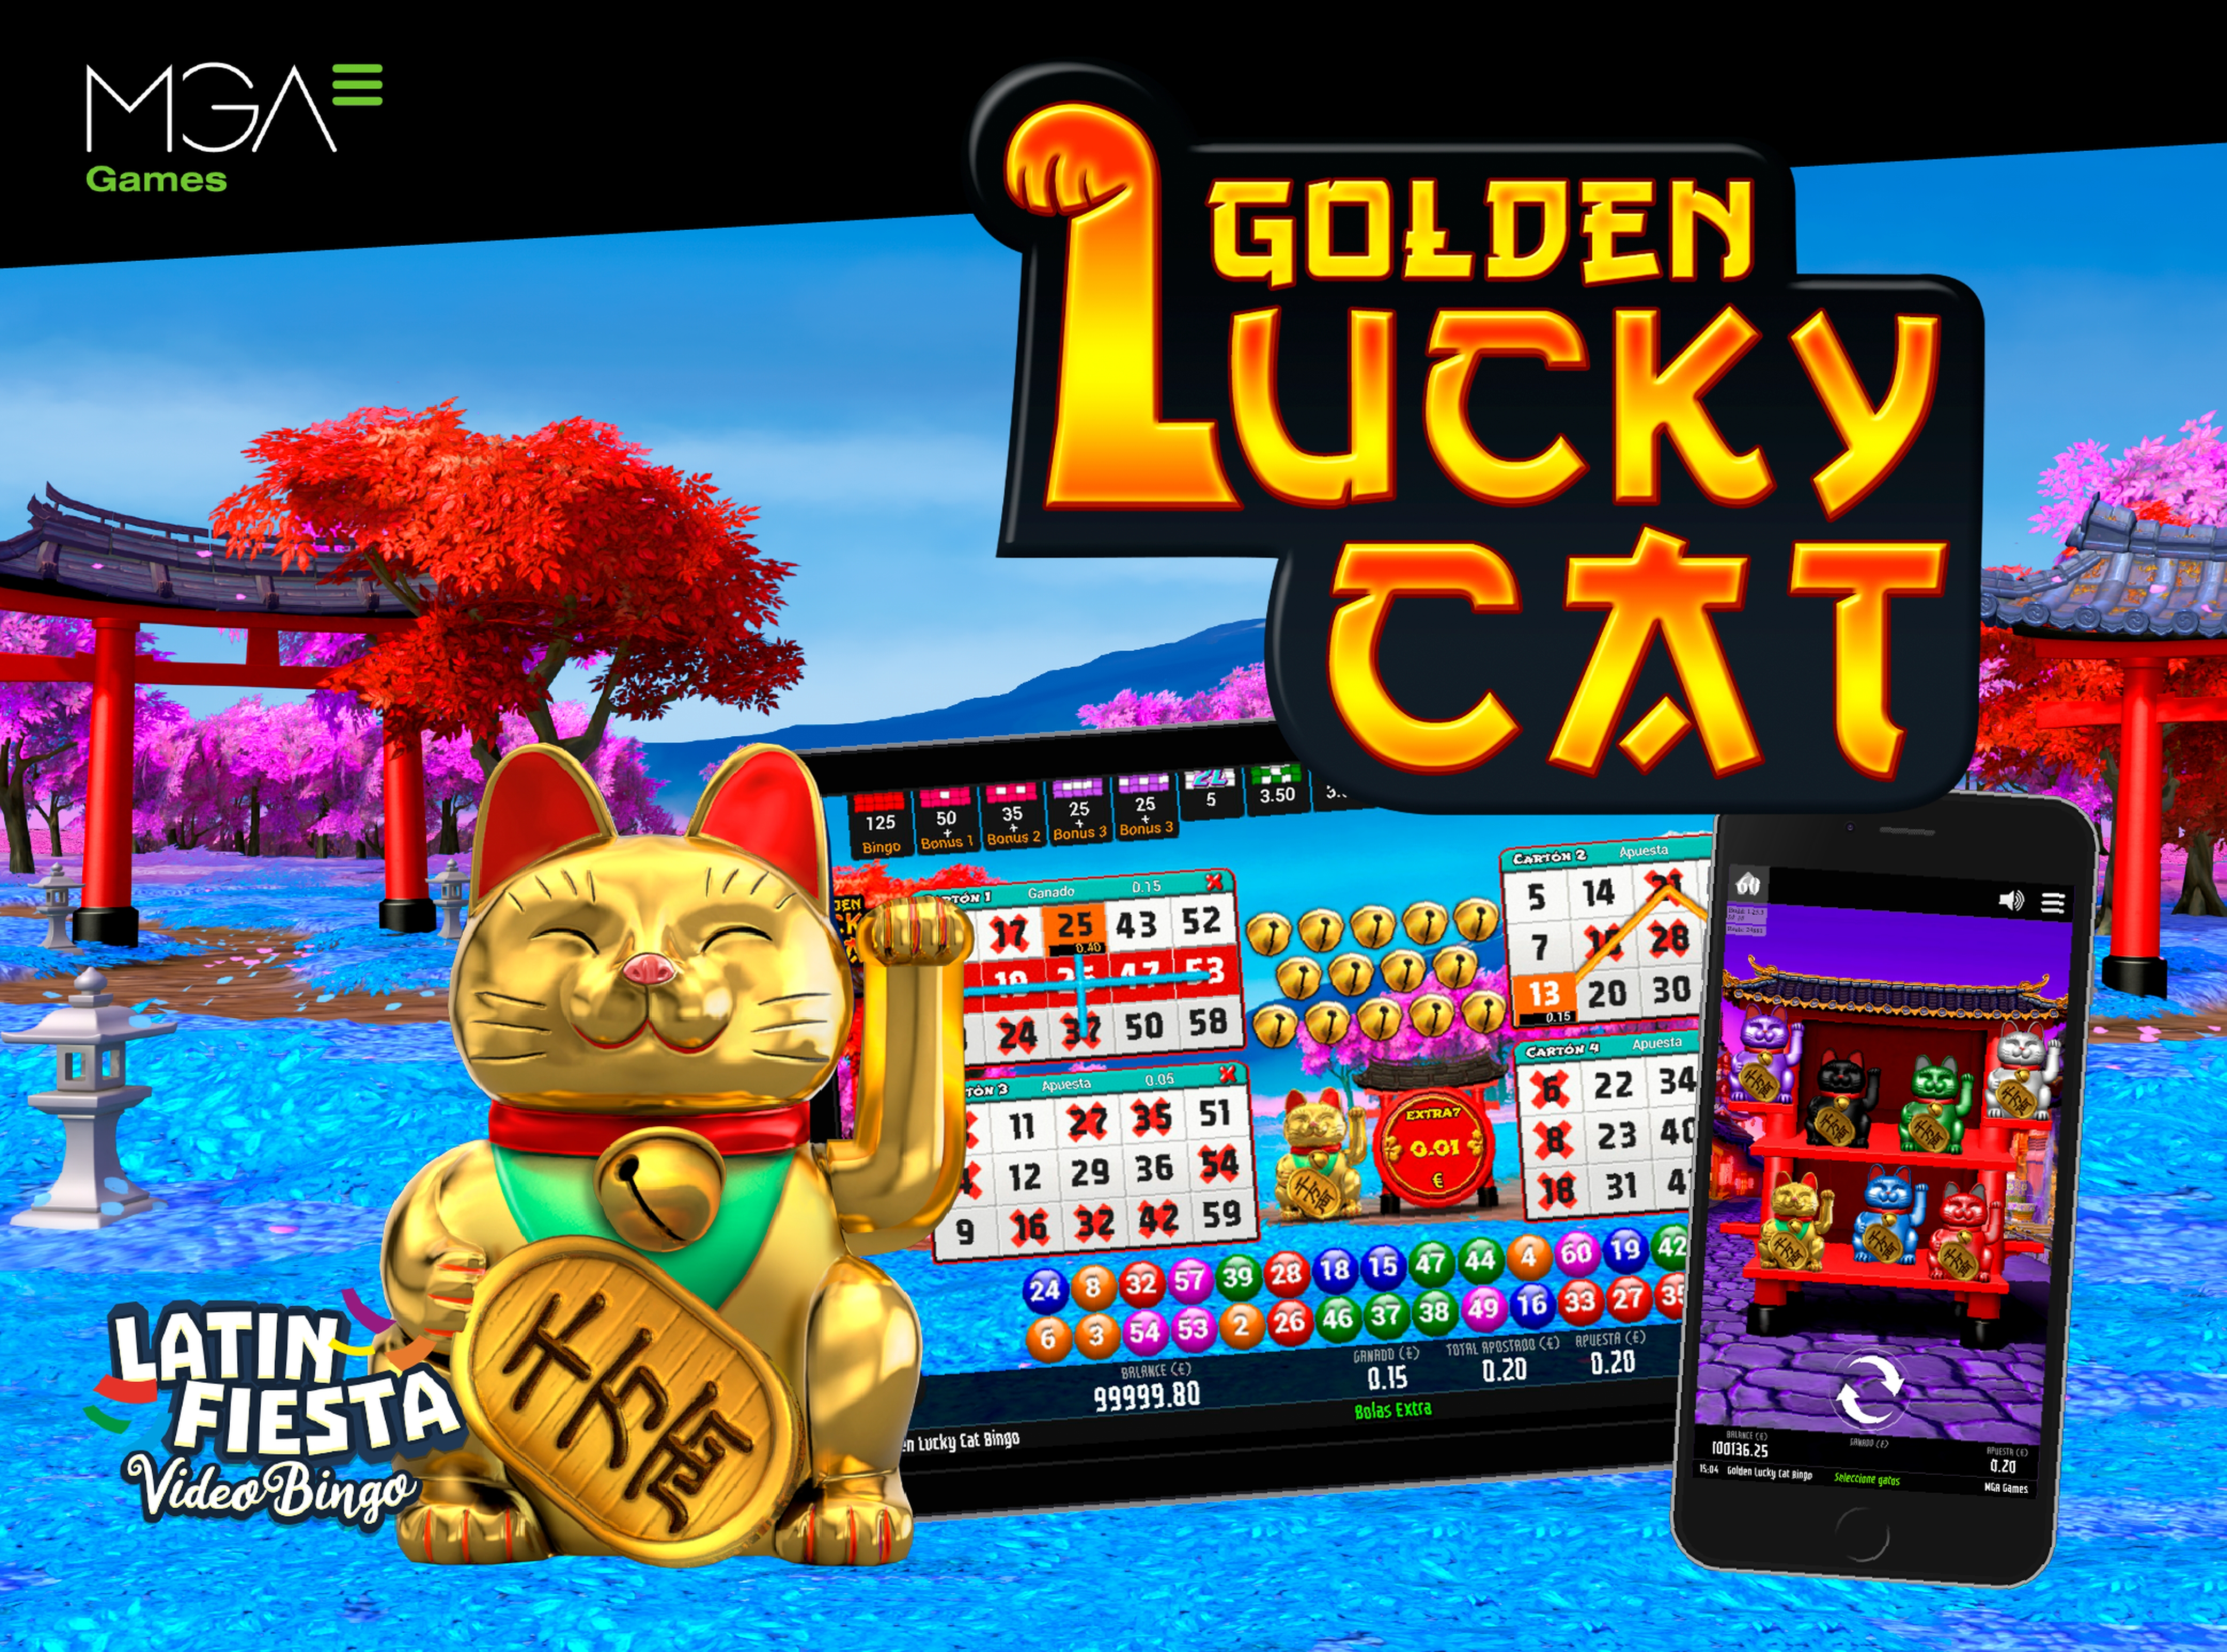 The Golden Lucky Cat Bingo Online Slot Demo Game by MGA